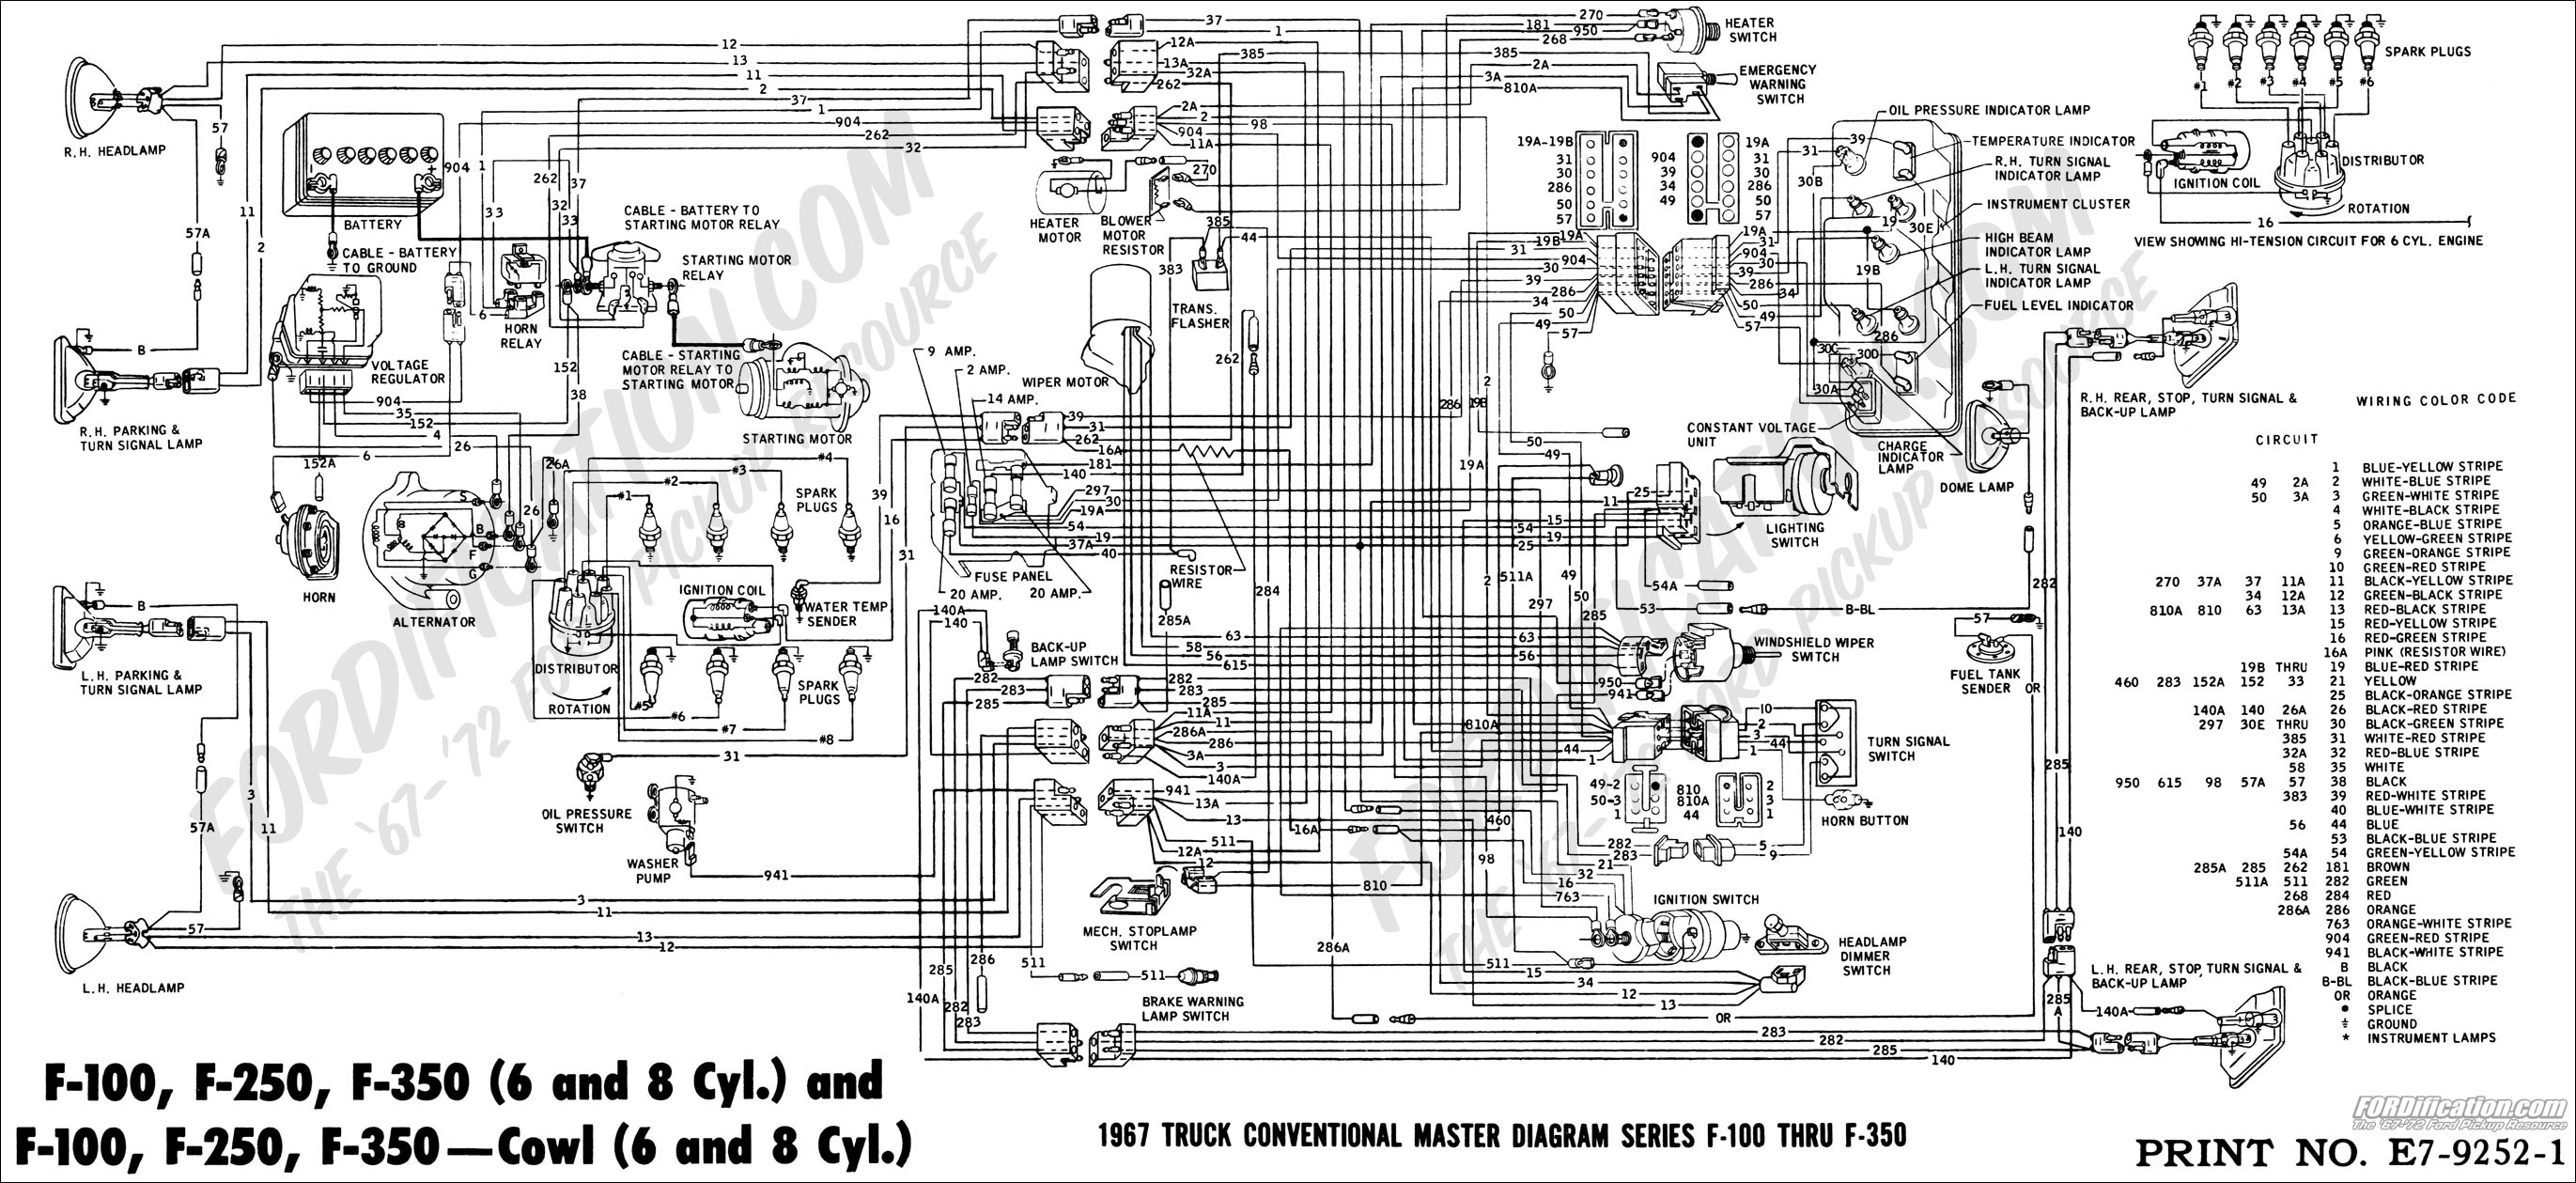 1993 Ford E 250 Wiring Diagram - Wiring Library